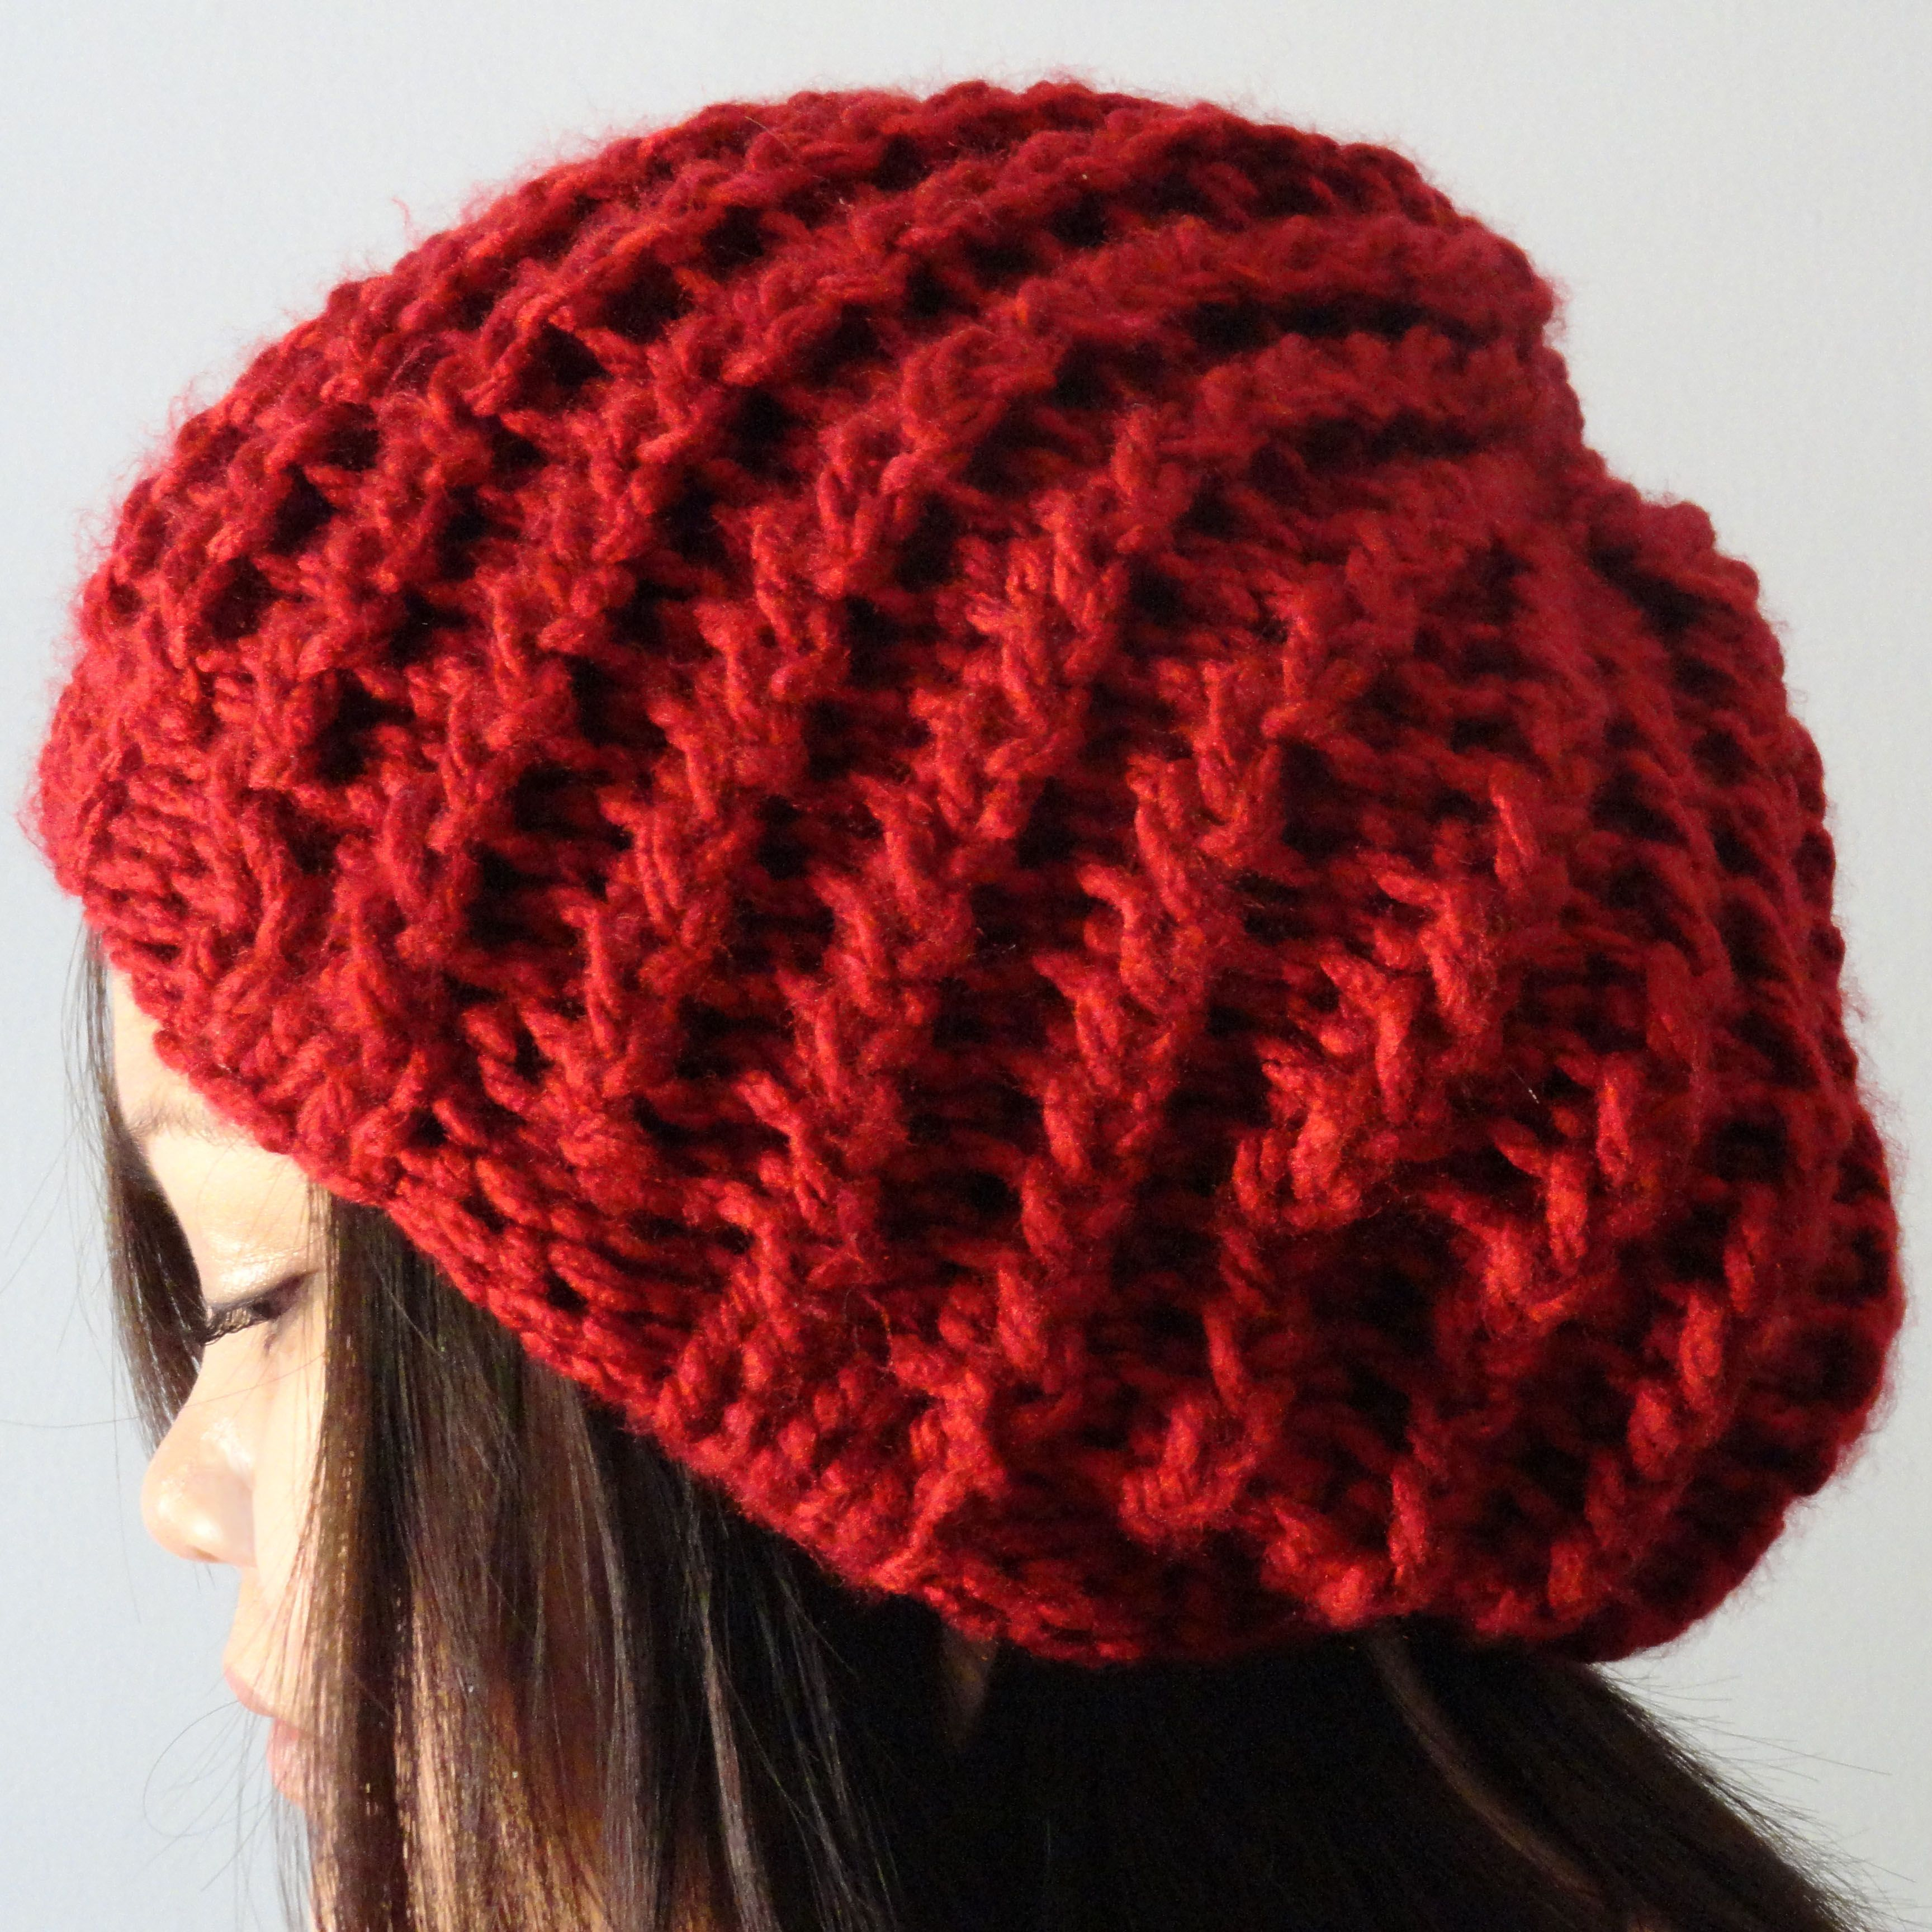 The stitch I used for this slouchy hat is the rickrack rib stitch ...